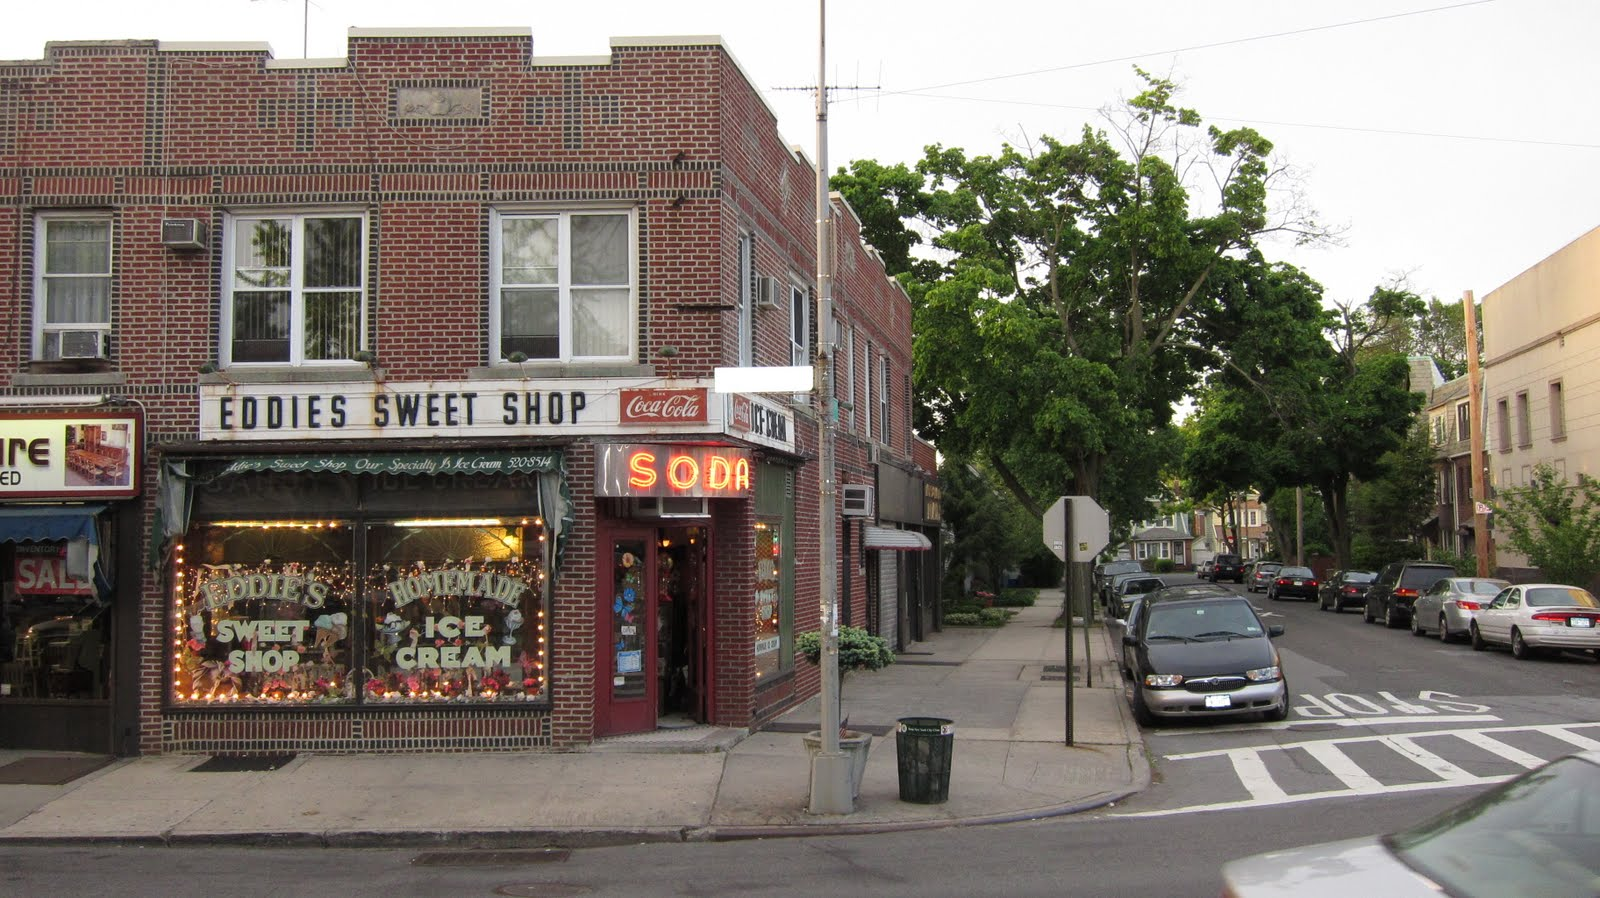 eddies-sweet-shop Les lieux de tournage à New York de la série Power Starz